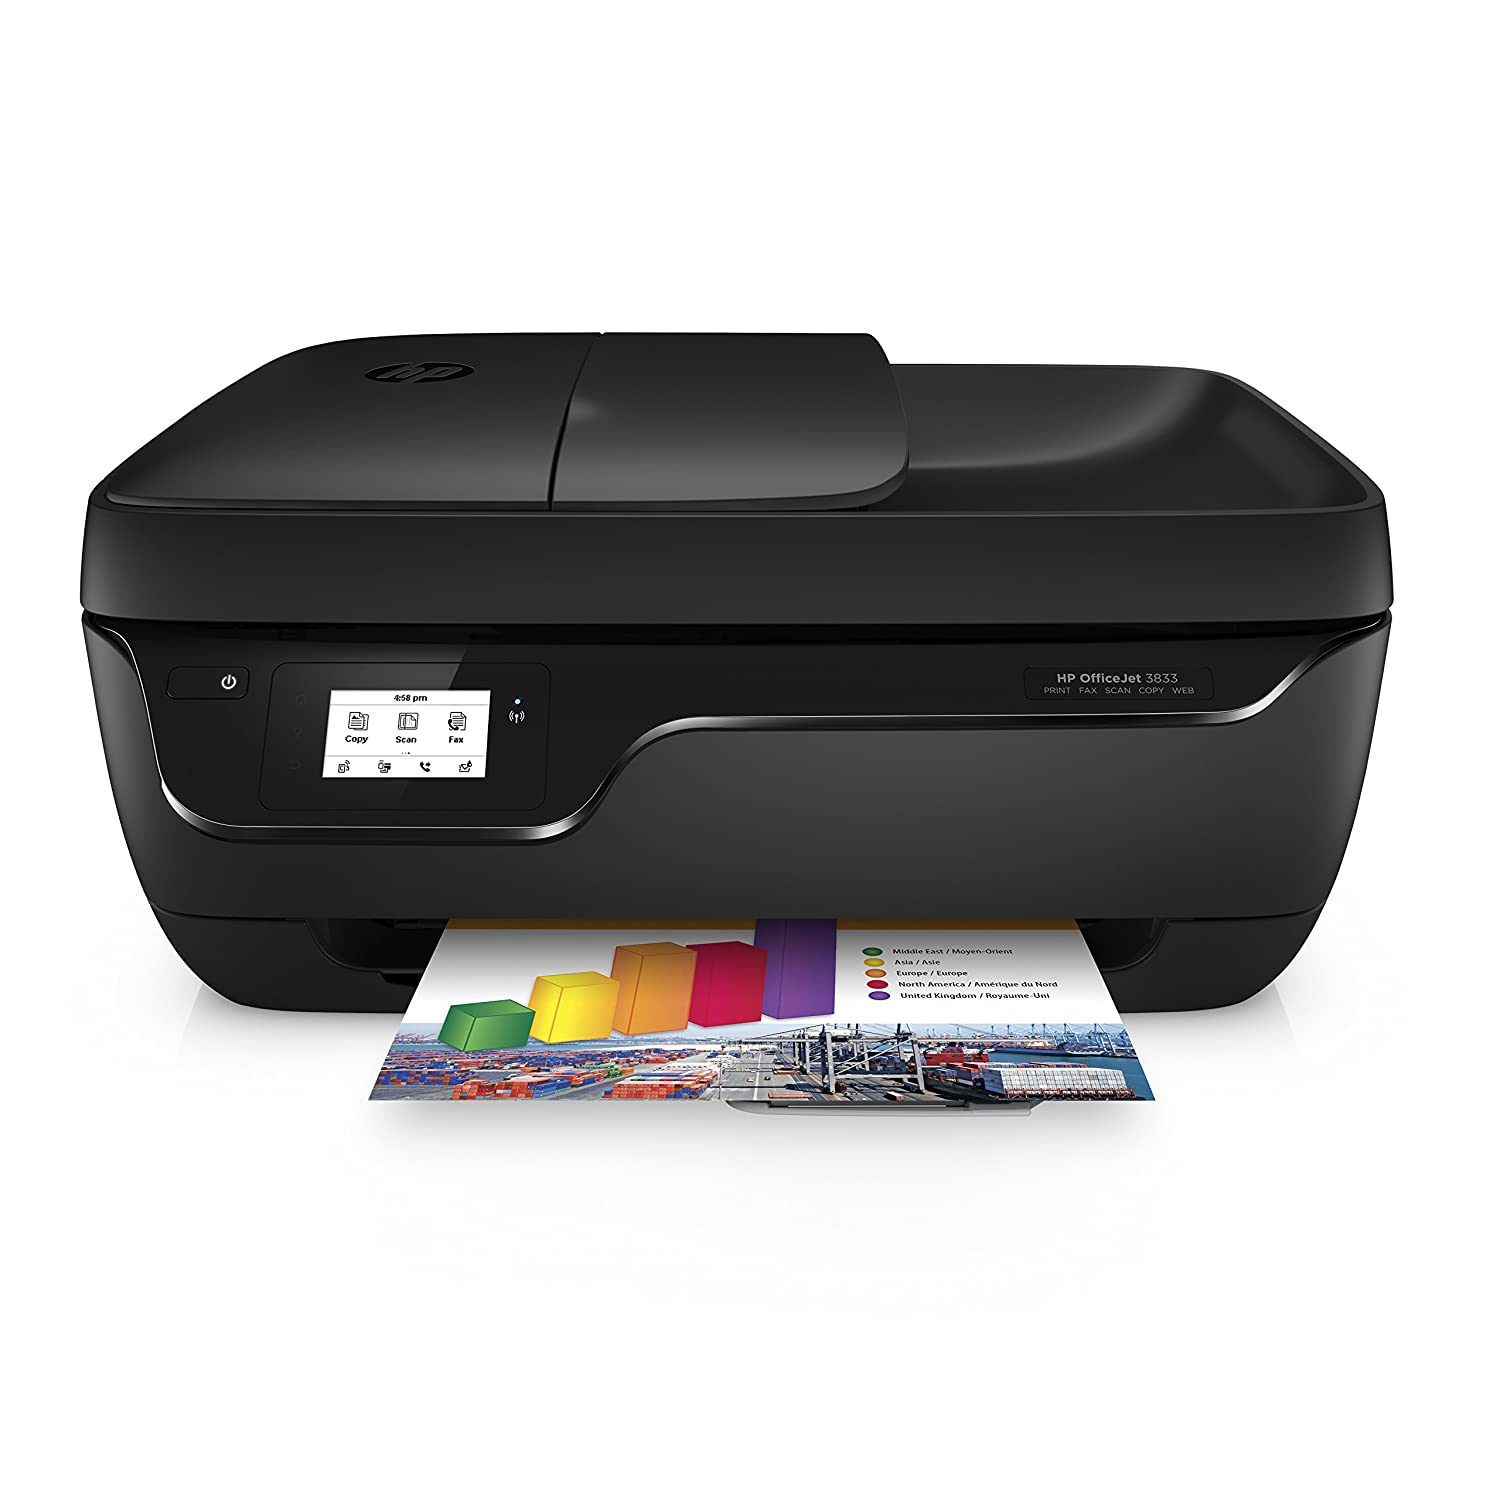 HP OFFICEJET 3833 DOWNLOAD DRIVERS